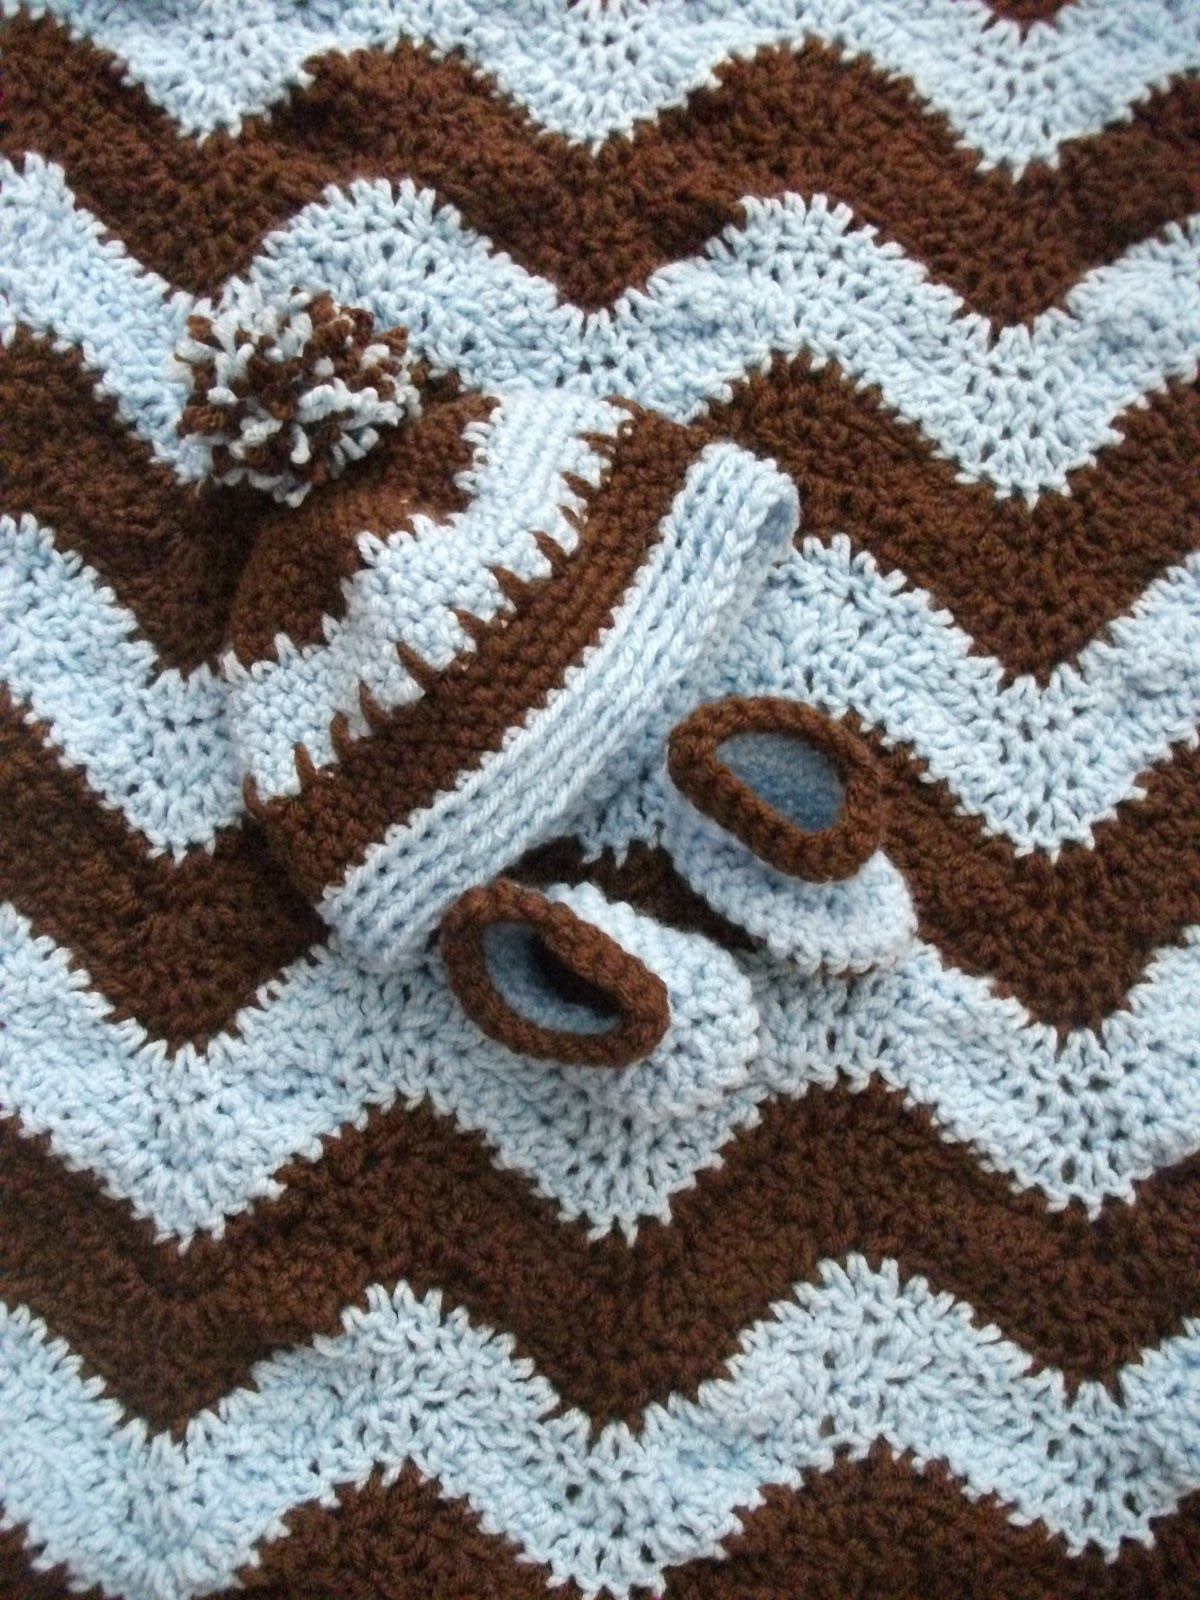 40 FREE CROCHET RIPPLE AFGHAN PATTERNS, LAPGHANS, BABY BLANKETS